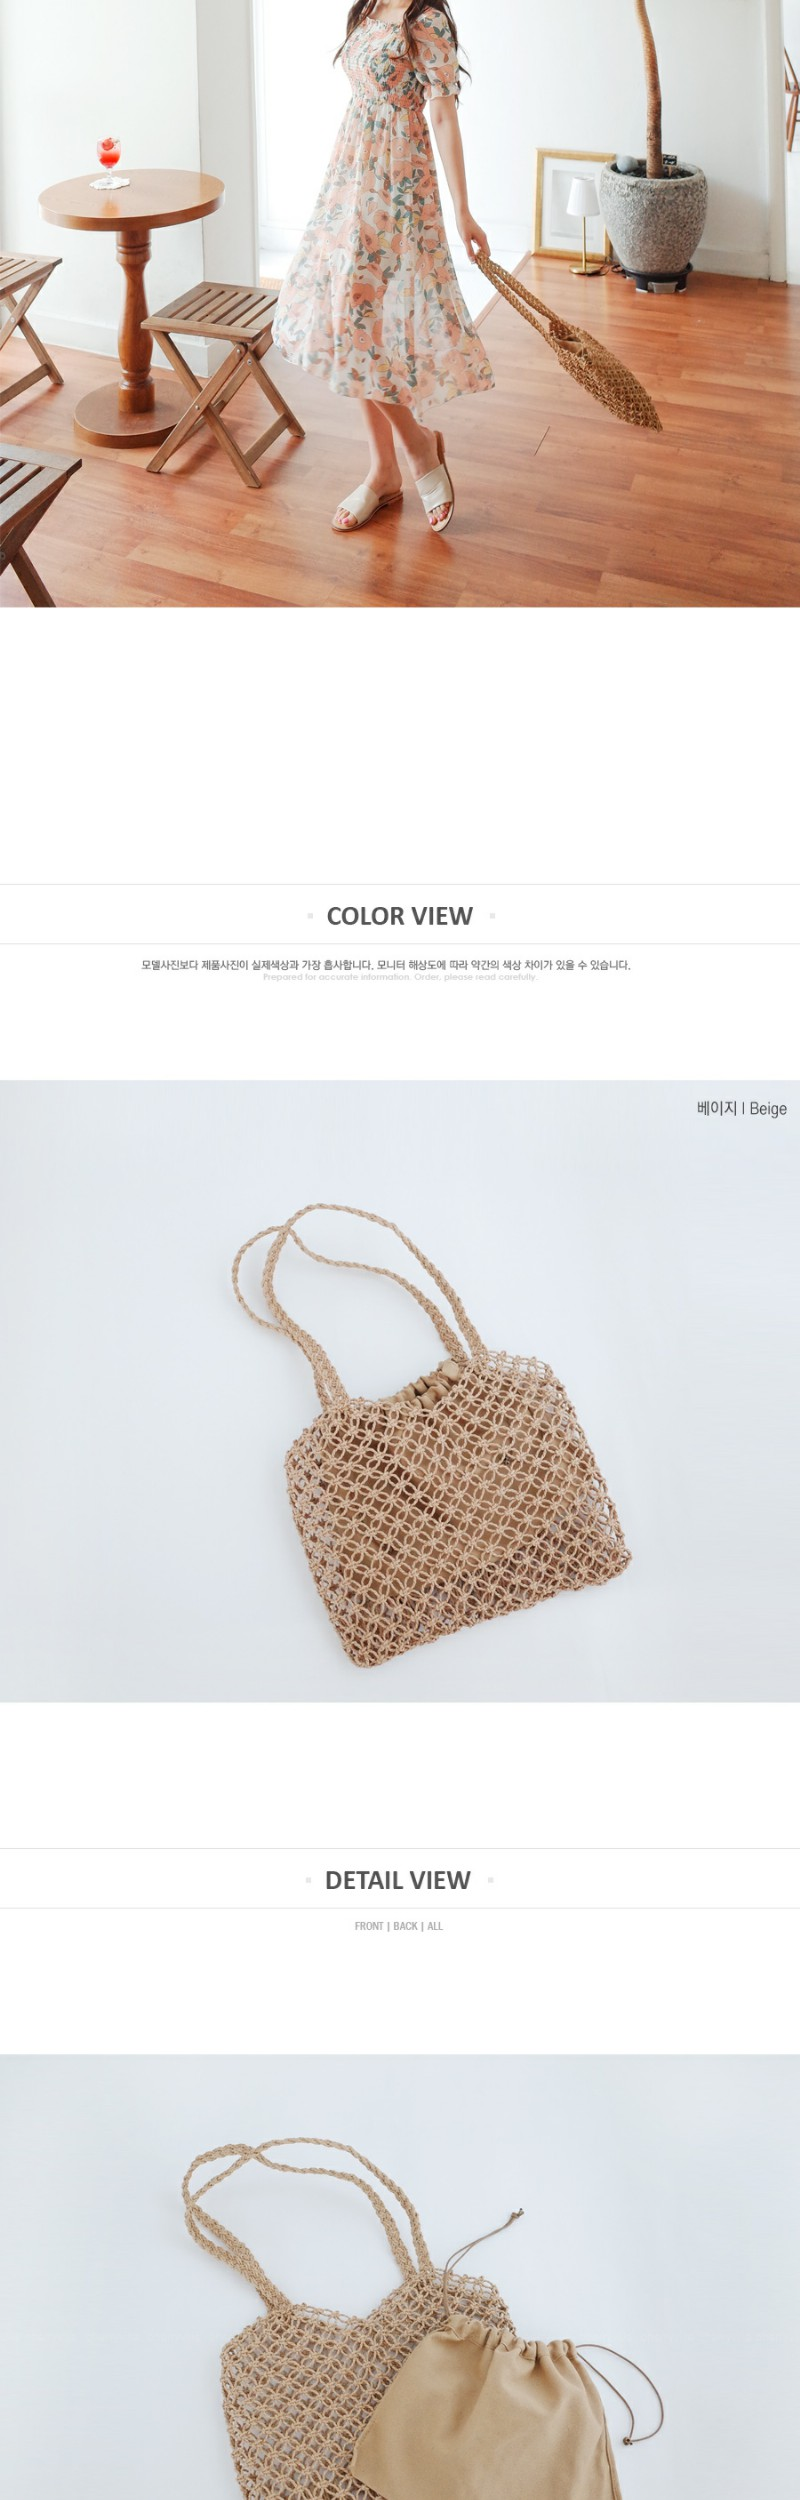 In summer this bag